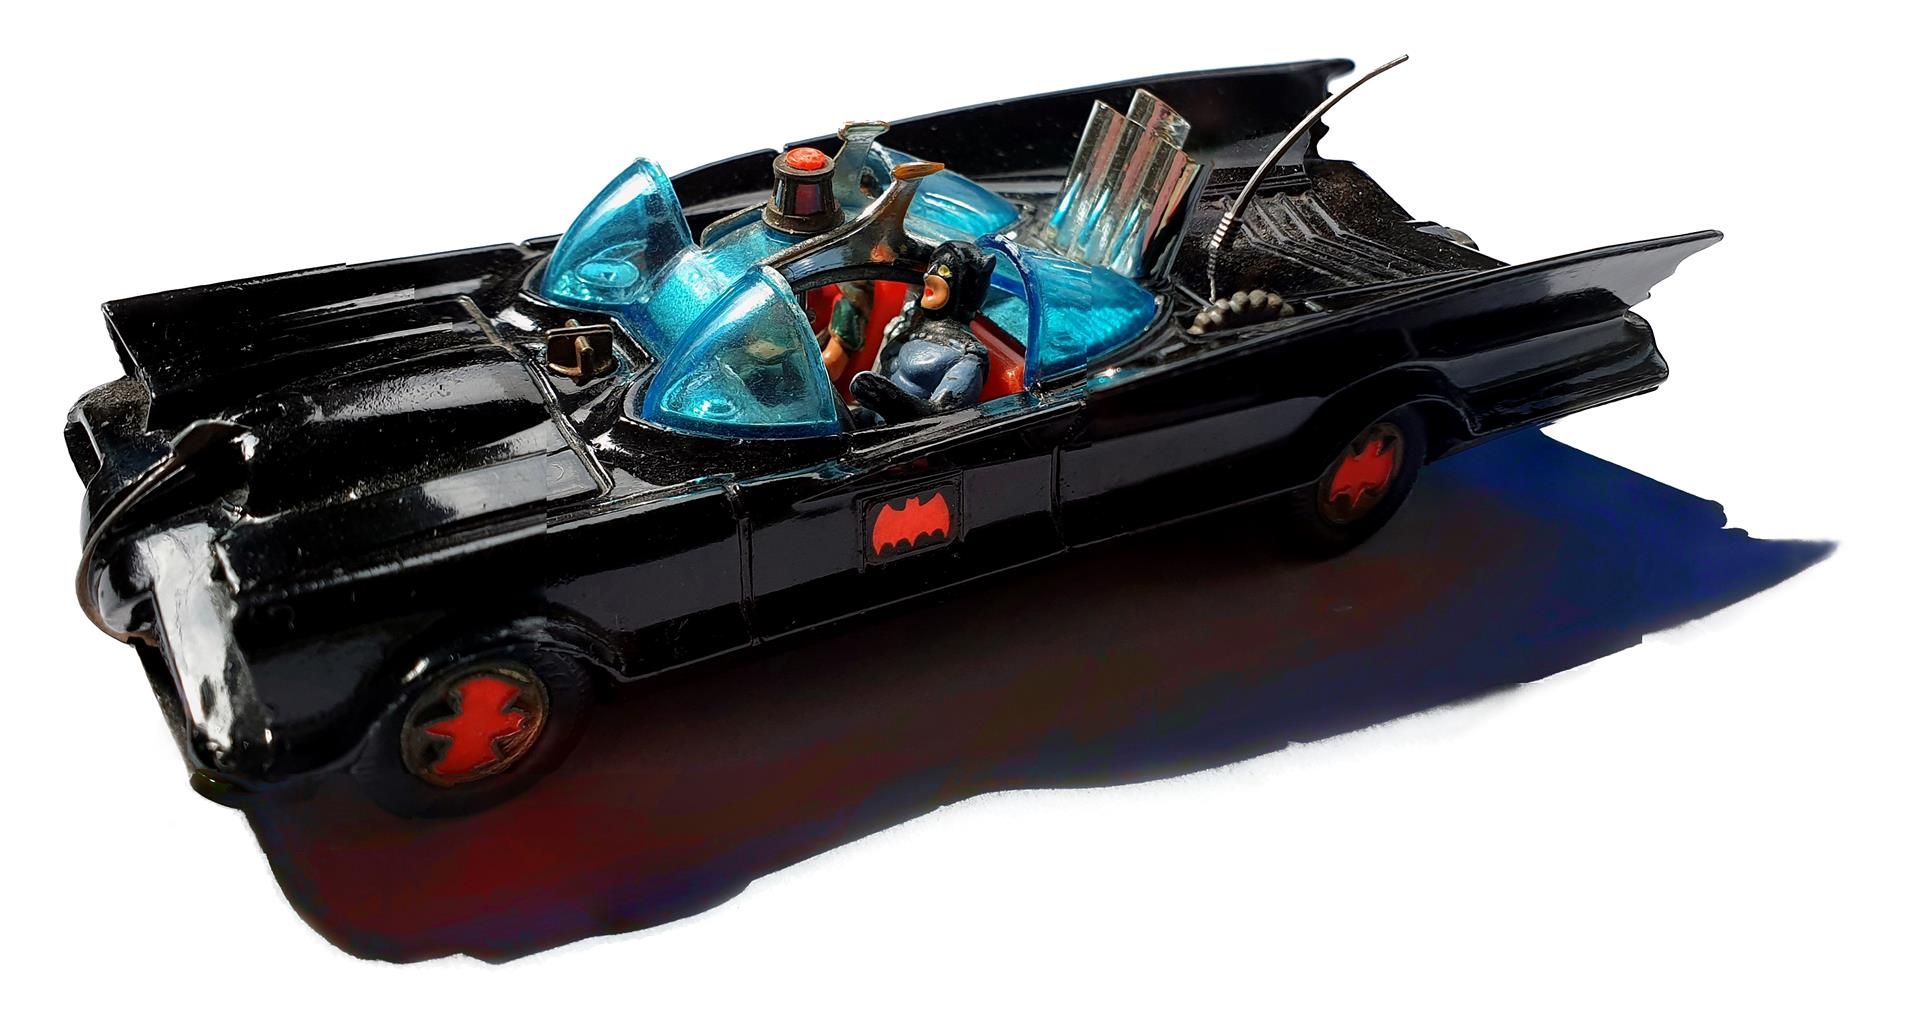 Peter-Robert Koenig My Batmobile - Corgi Diecast Model no. 267 - Issued 1966